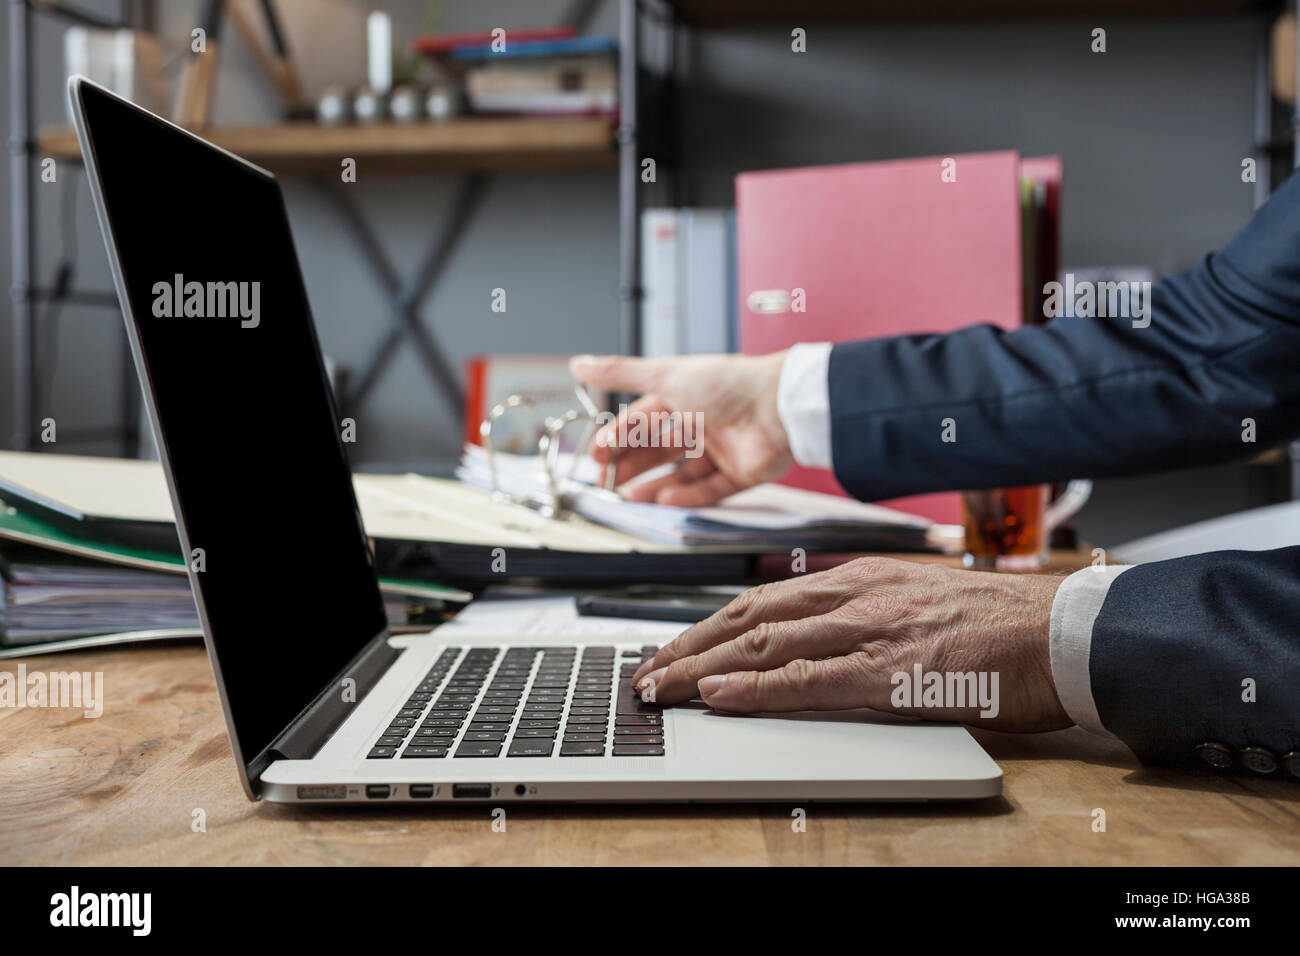 Unrecognizable man using a modern portable computer on an wooden table at home - Stock Image